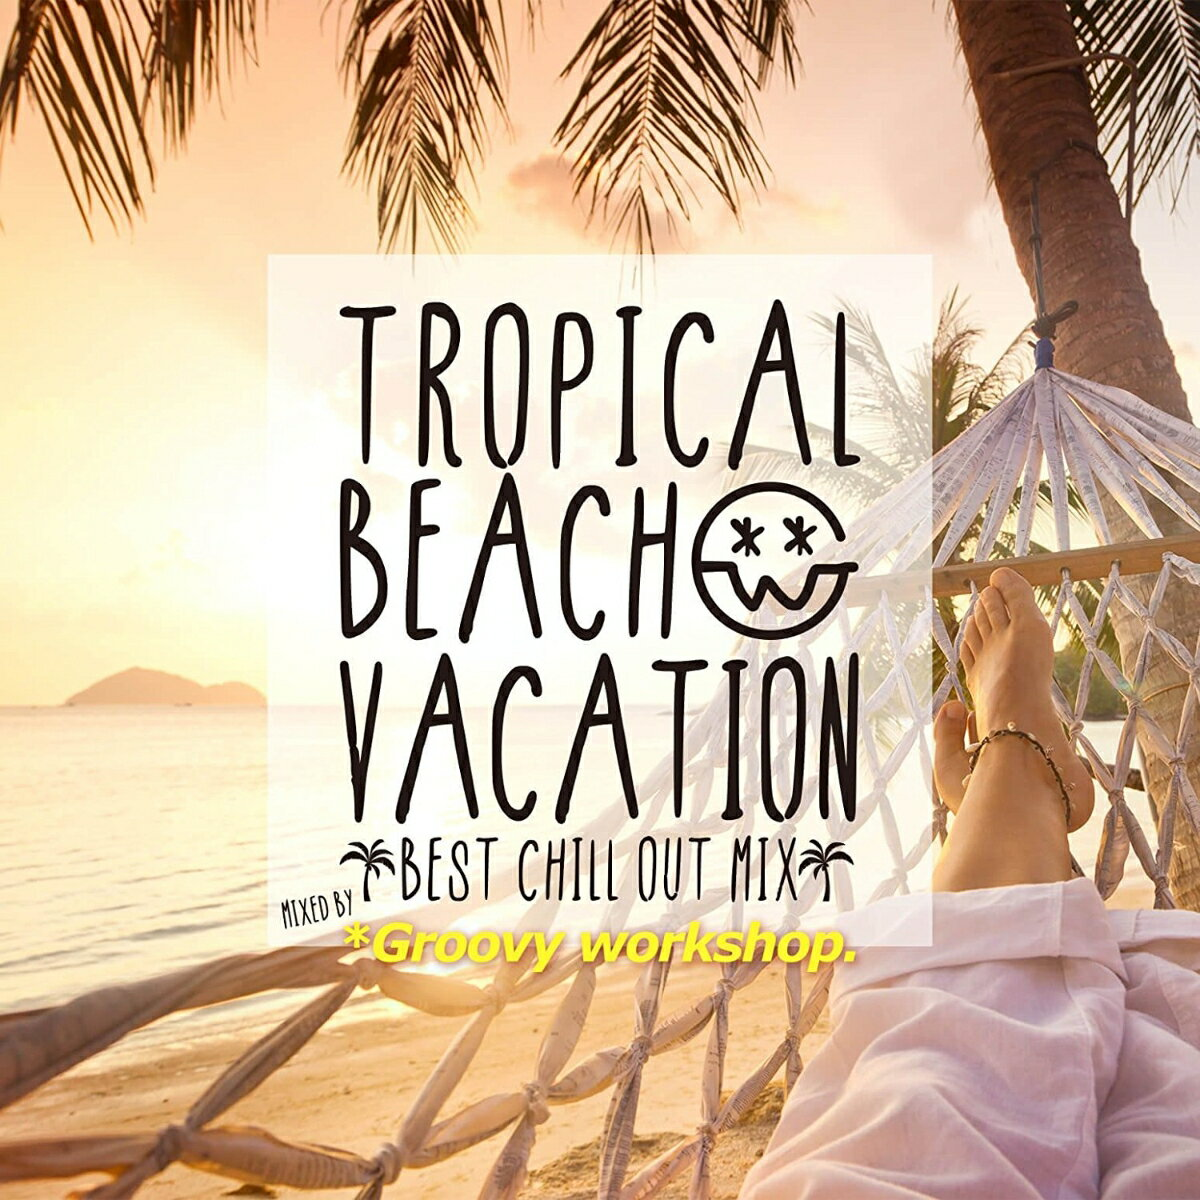 Tropical Beach Vacation -Best Chill Out Mix- mixed by Groovy workshop画像